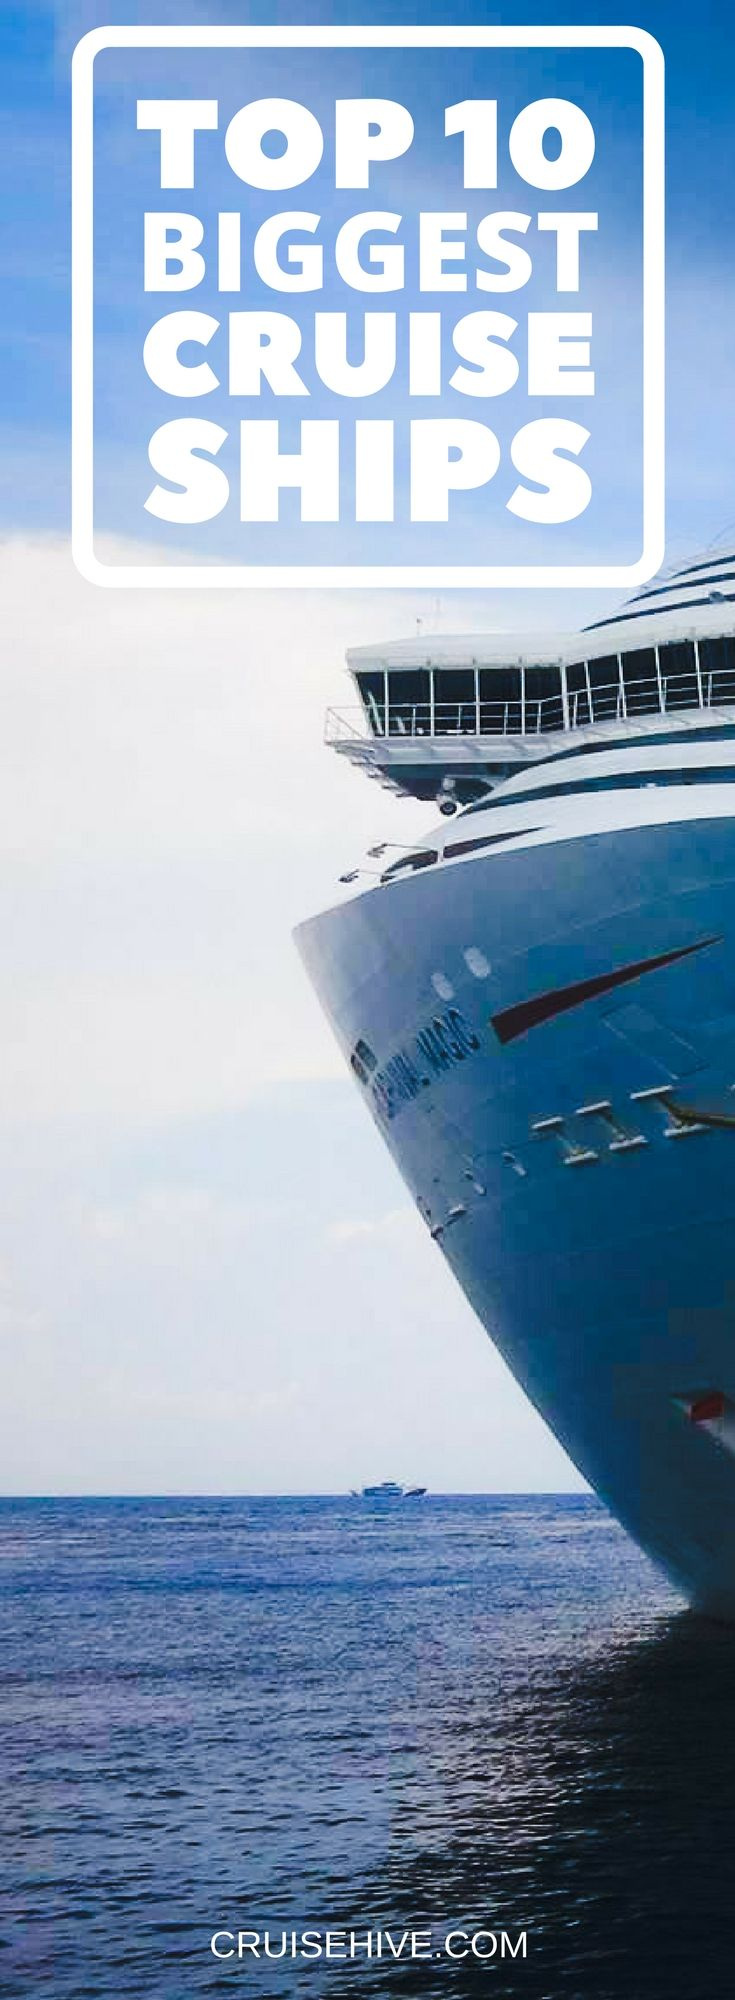 We look at the top 10 biggest cruise ships in the world by gross tonnage. This ever-changing list includes some of the largest cruise ships in the world from Royal Caribbean, MSC Cruises, and Norwegian Cruise Line.